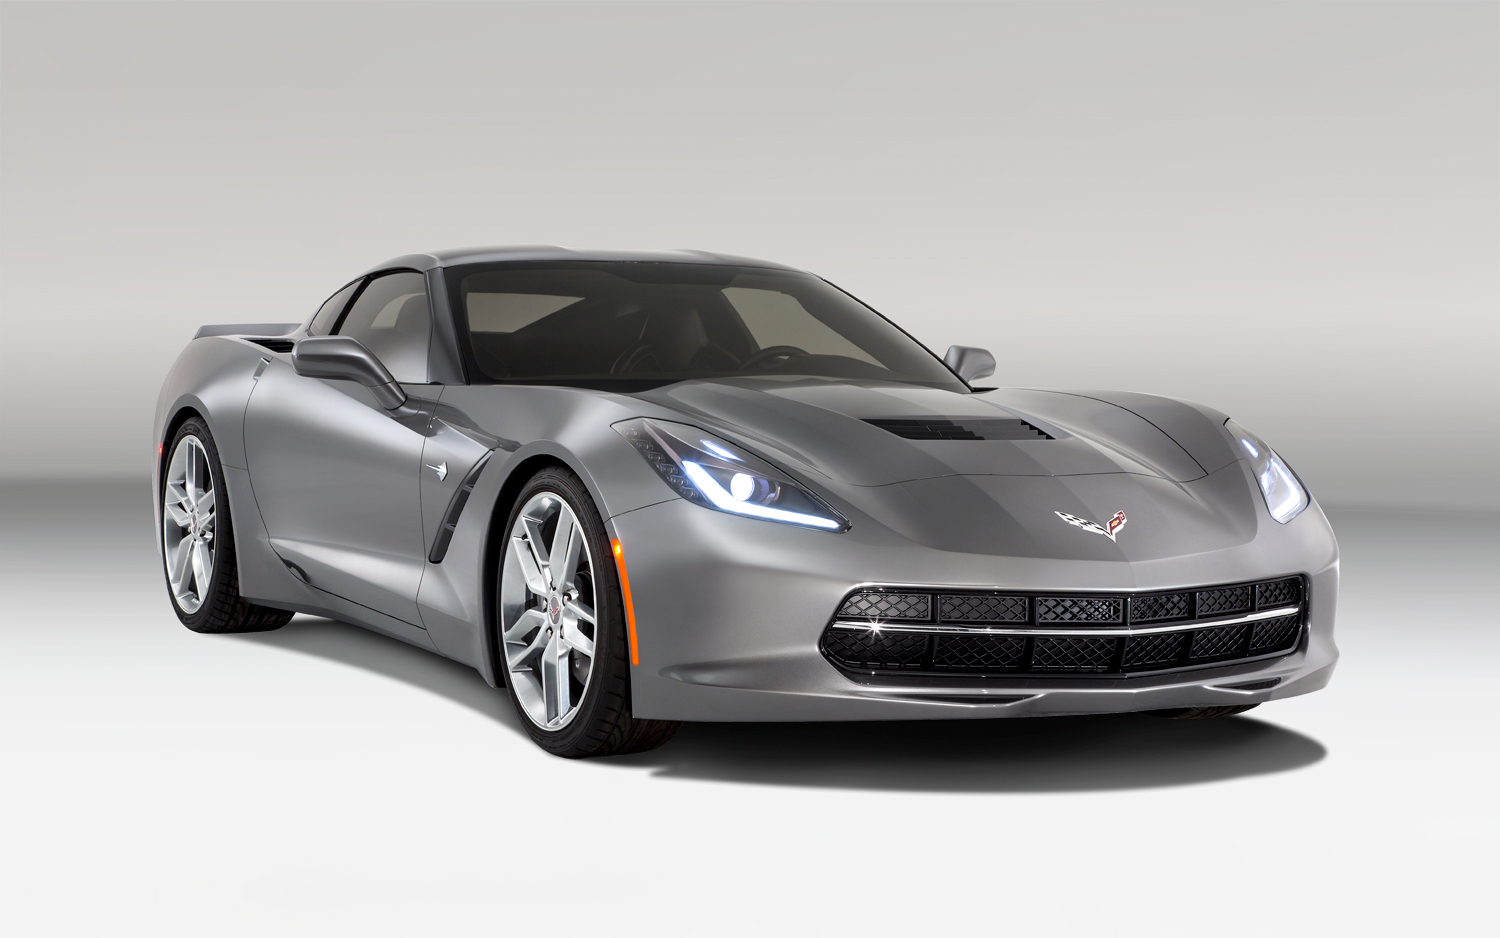 2014 Chevrolet Corvette Stingray #11